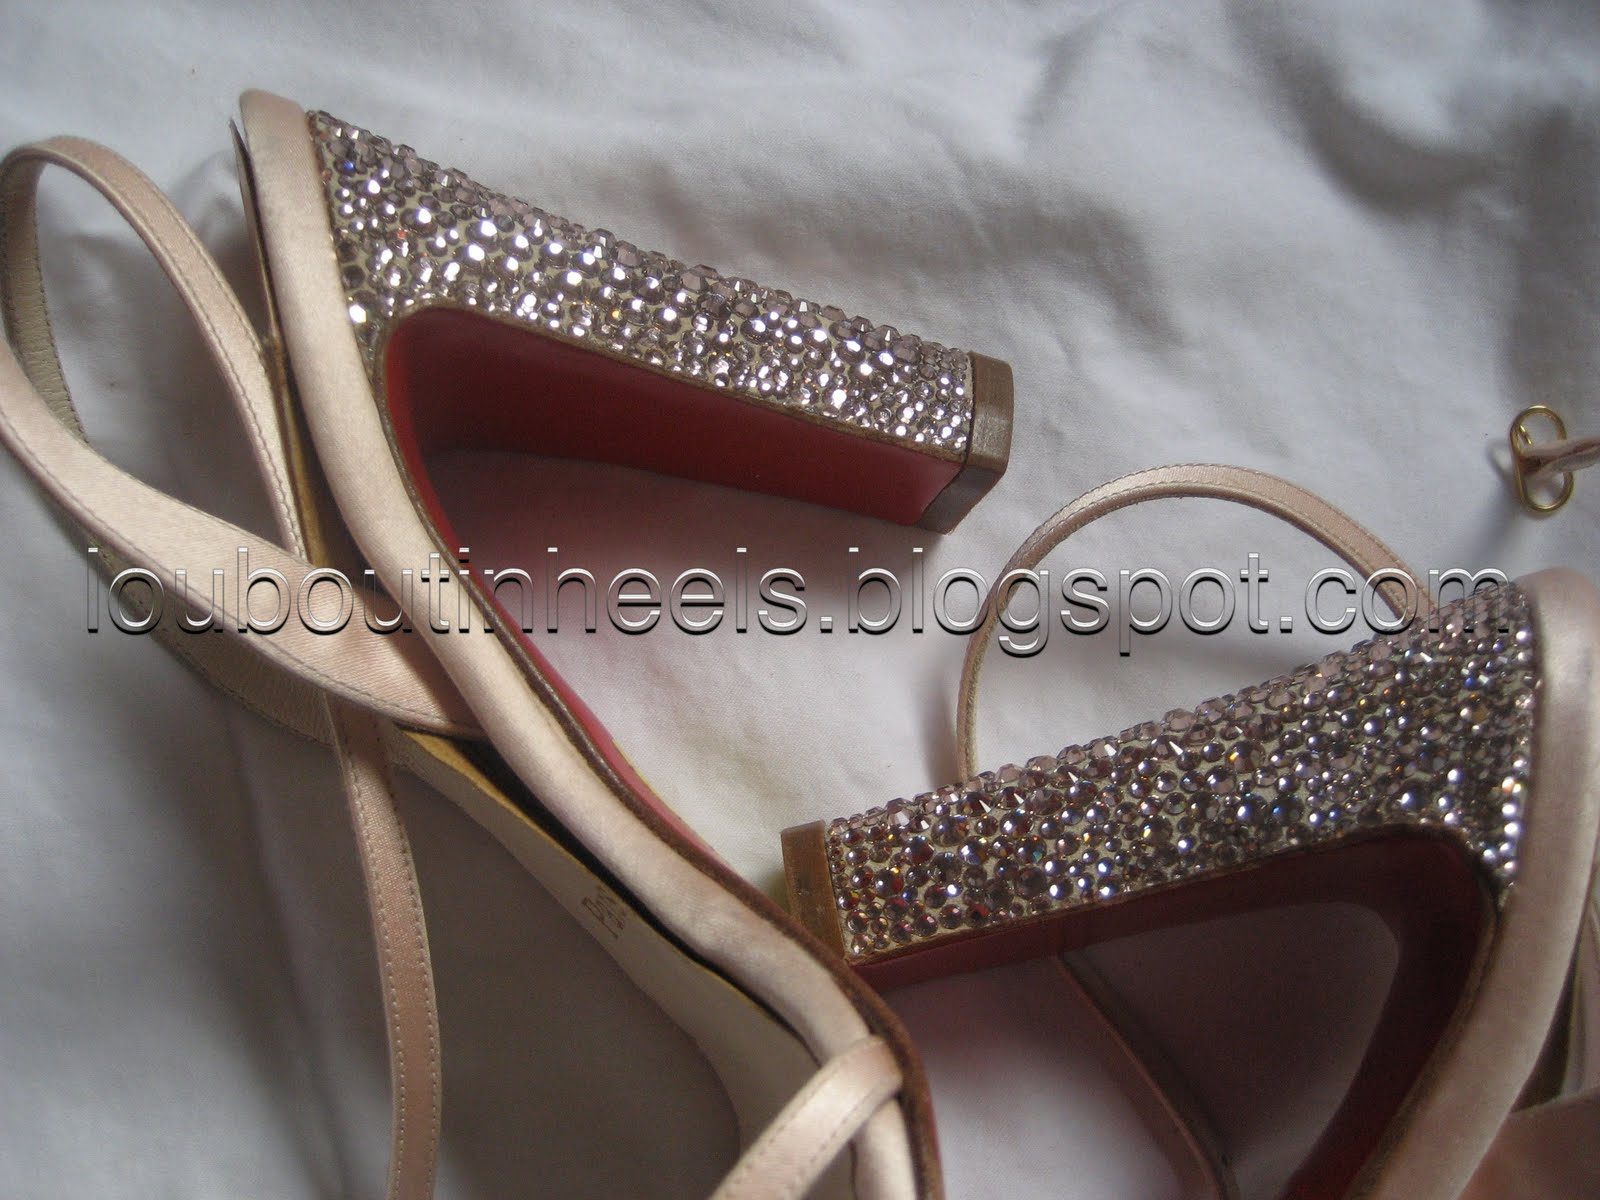 louboutin studded mens shoes - louboutin heels: Christian Louboutin Strass Beige Satin Sandals Heels